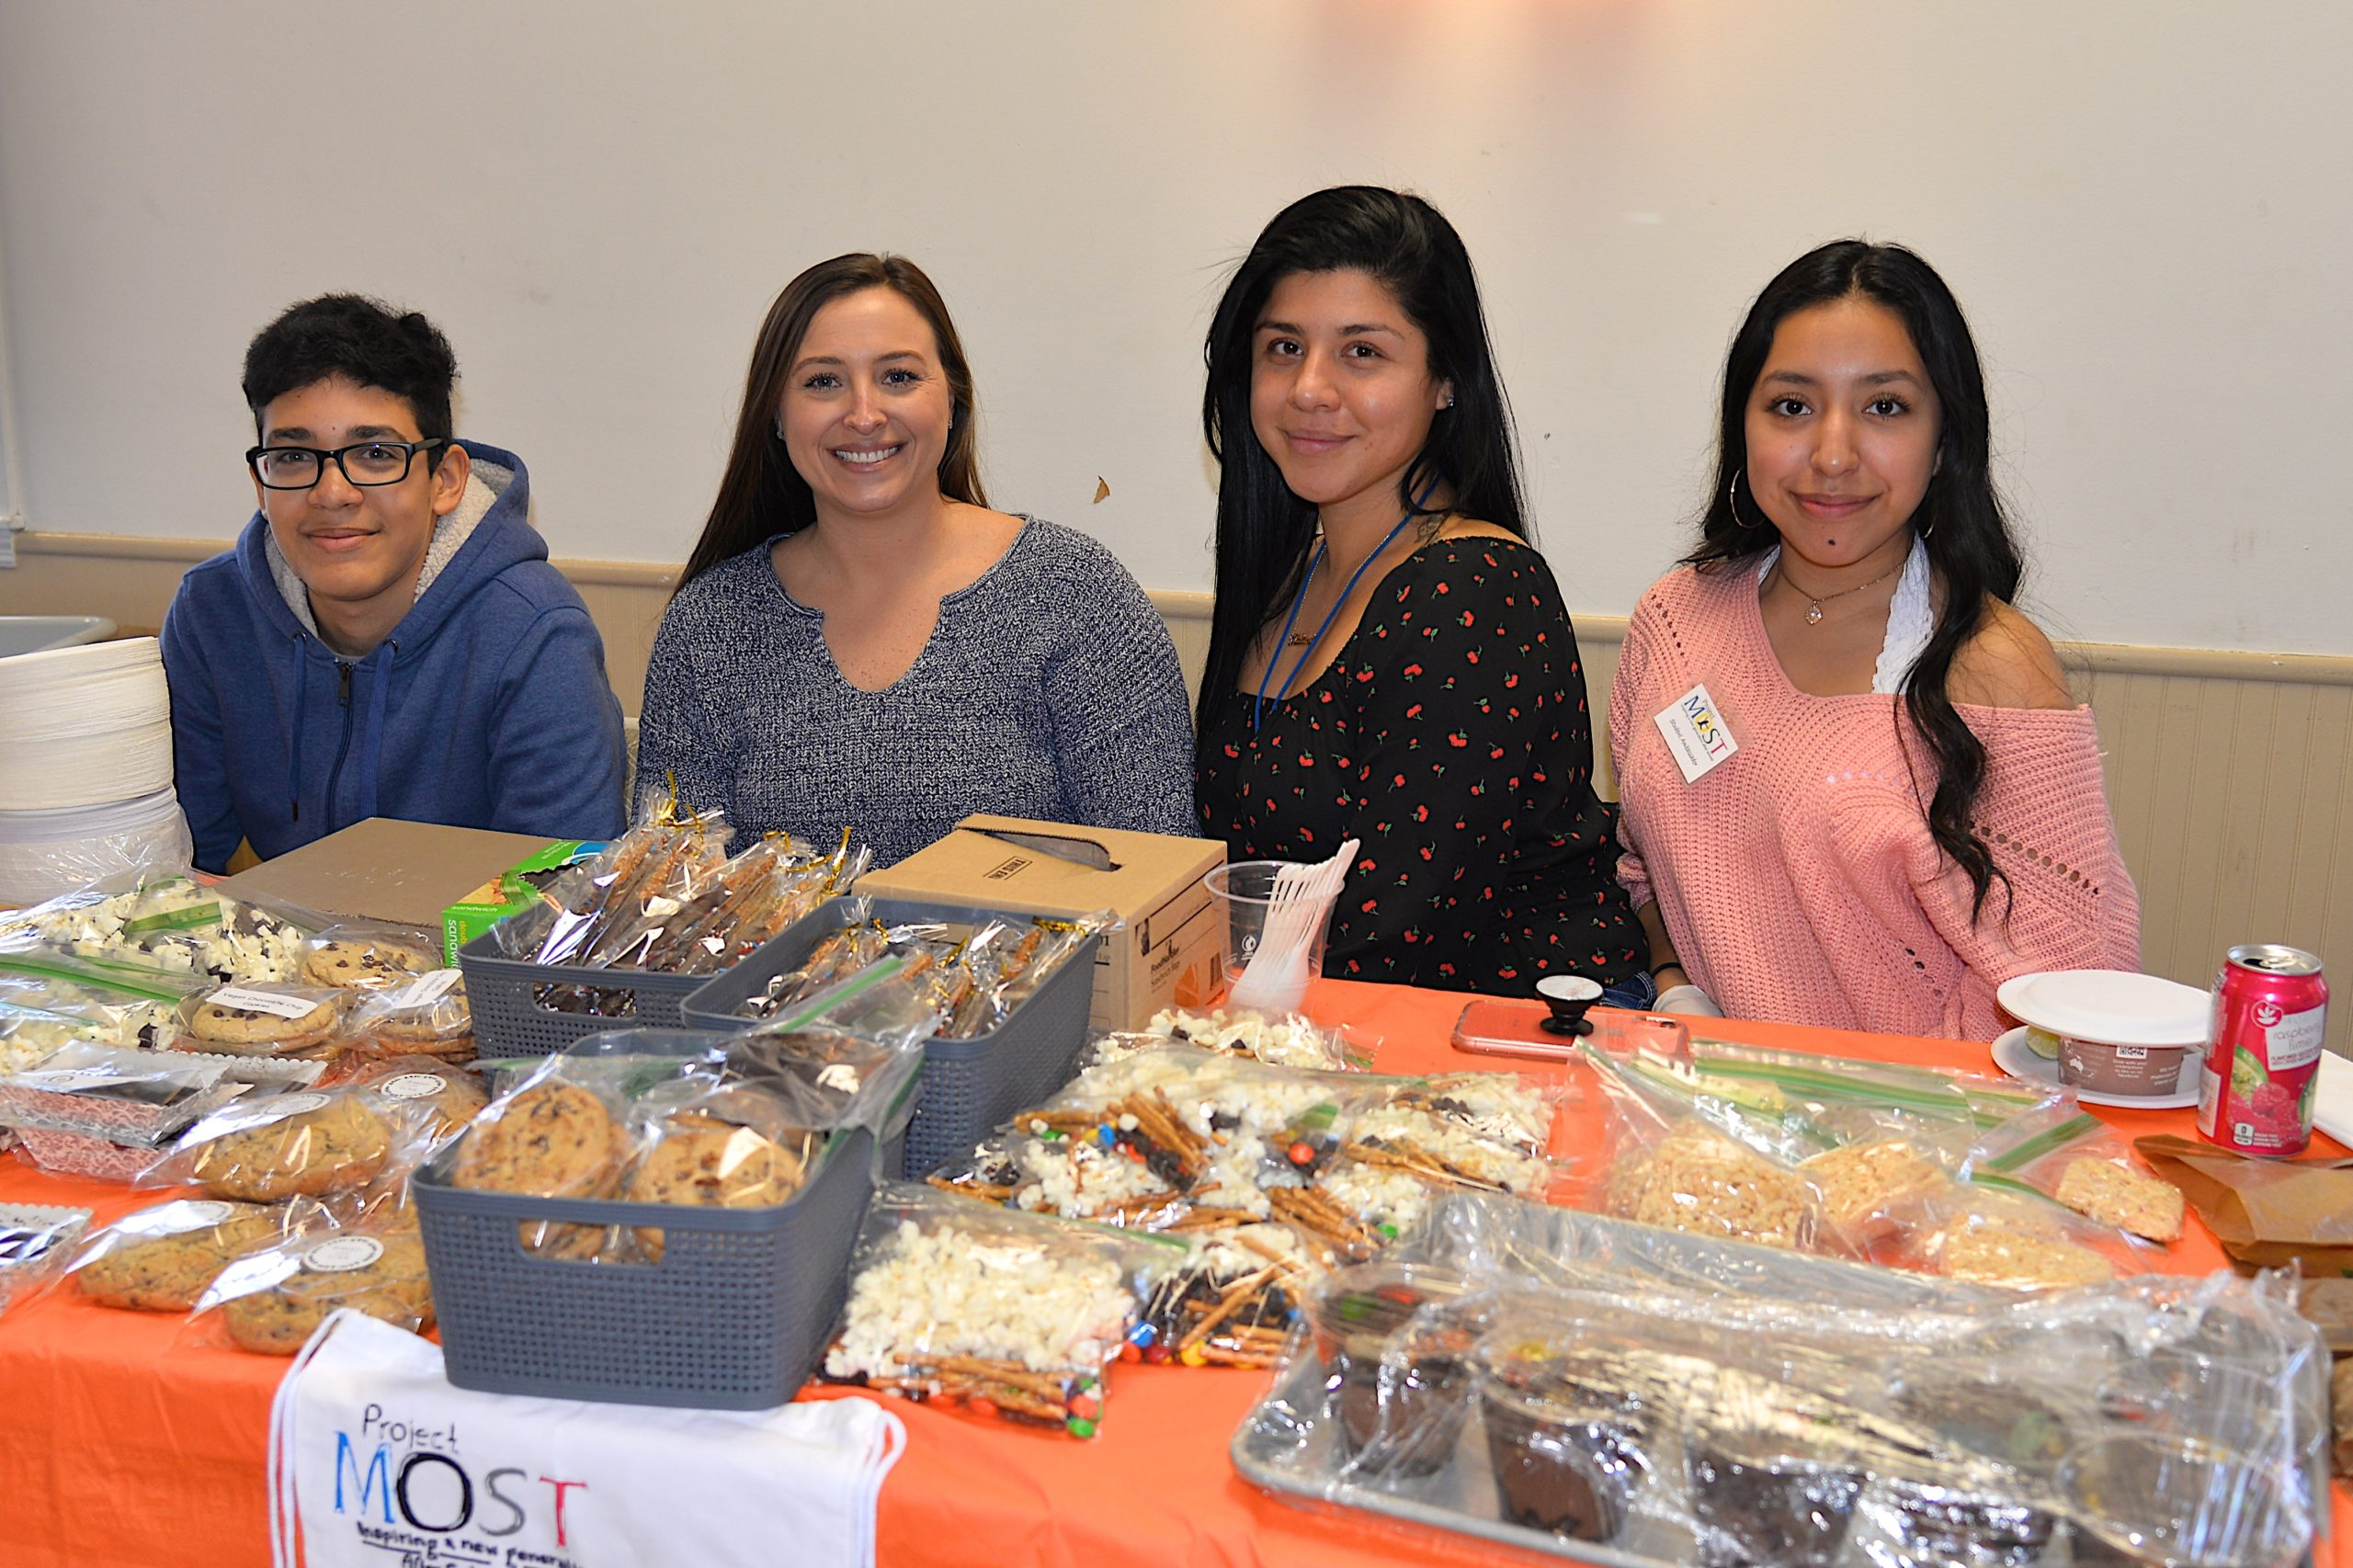 Empty Bowls, a fundraiser for Project Most, with soups from local chefs and restaurants took place at the Amagansett American Legion hall on Sunday. Volunteering at the baked goods table, from left, Aaron Jimenez, Melissa Anderson, Malany Perez and Mariser Gallegos. KYRIL BROMLEY